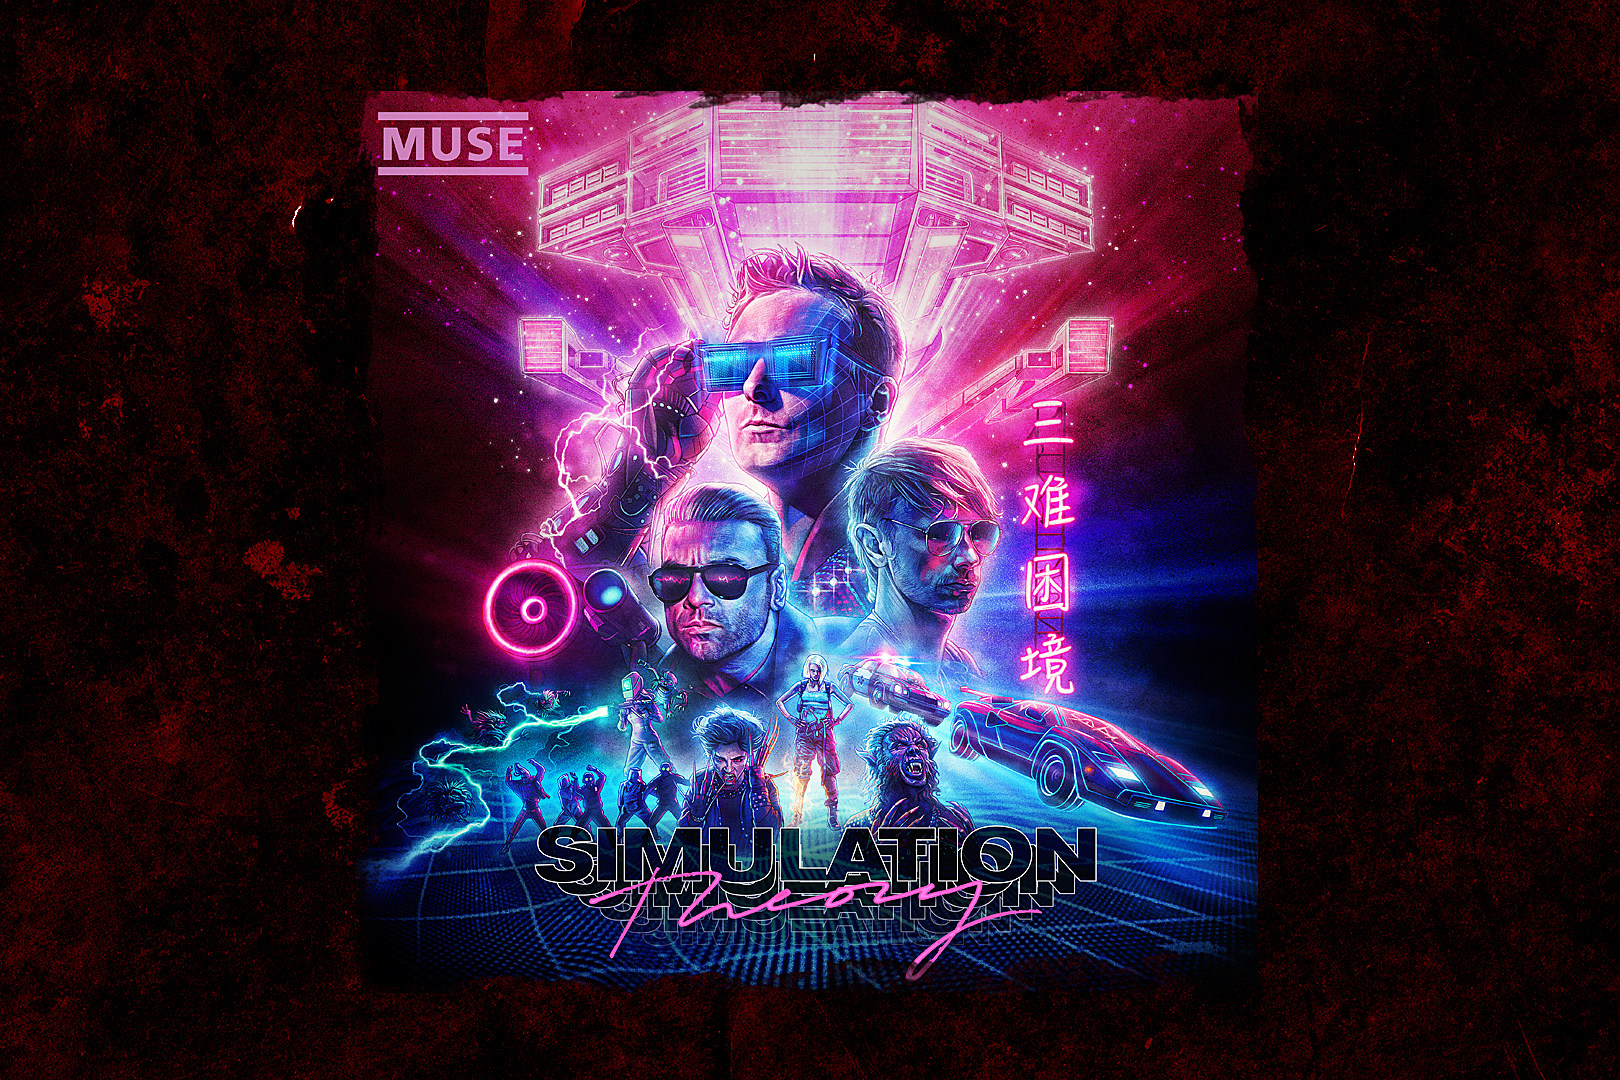 Simulateur Credit Matmut Muse Reveal Simulation Theory 2019 World Tour Concert Dates